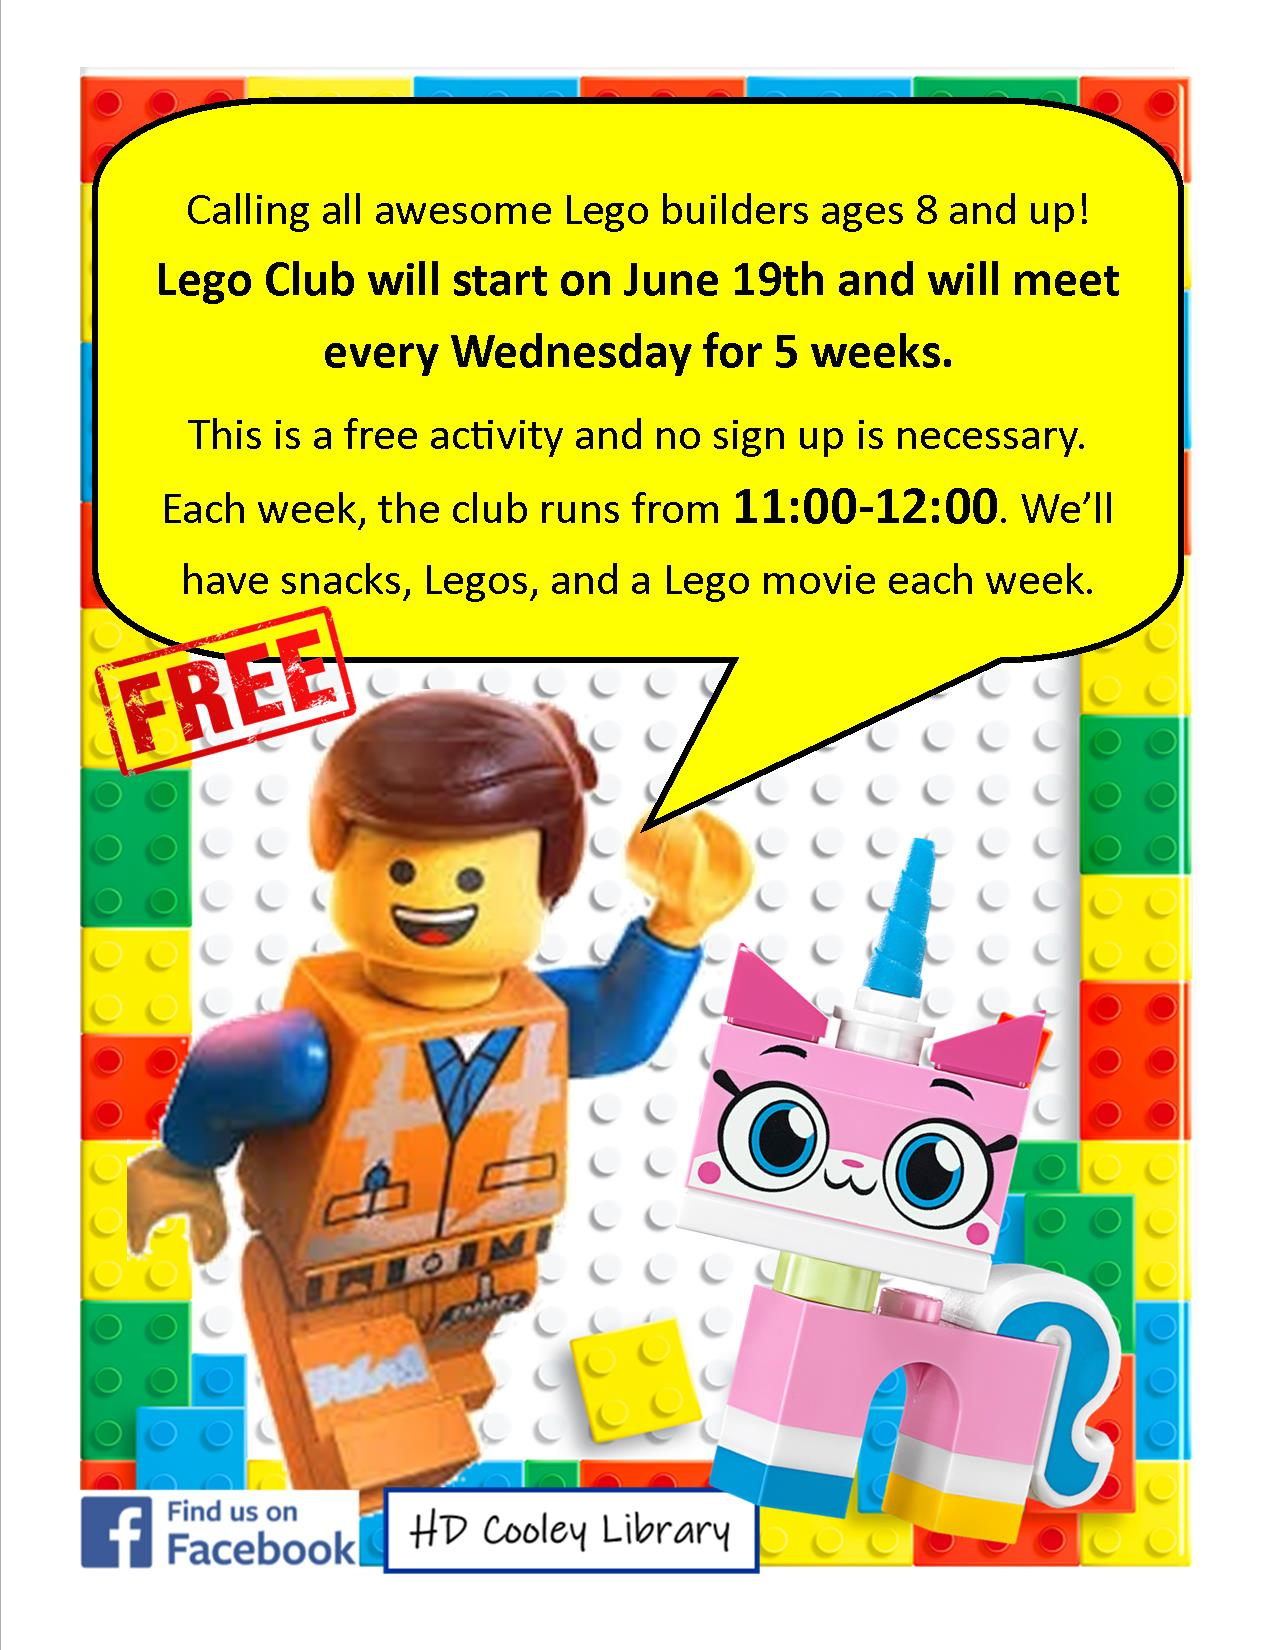 Lego Club dates and times